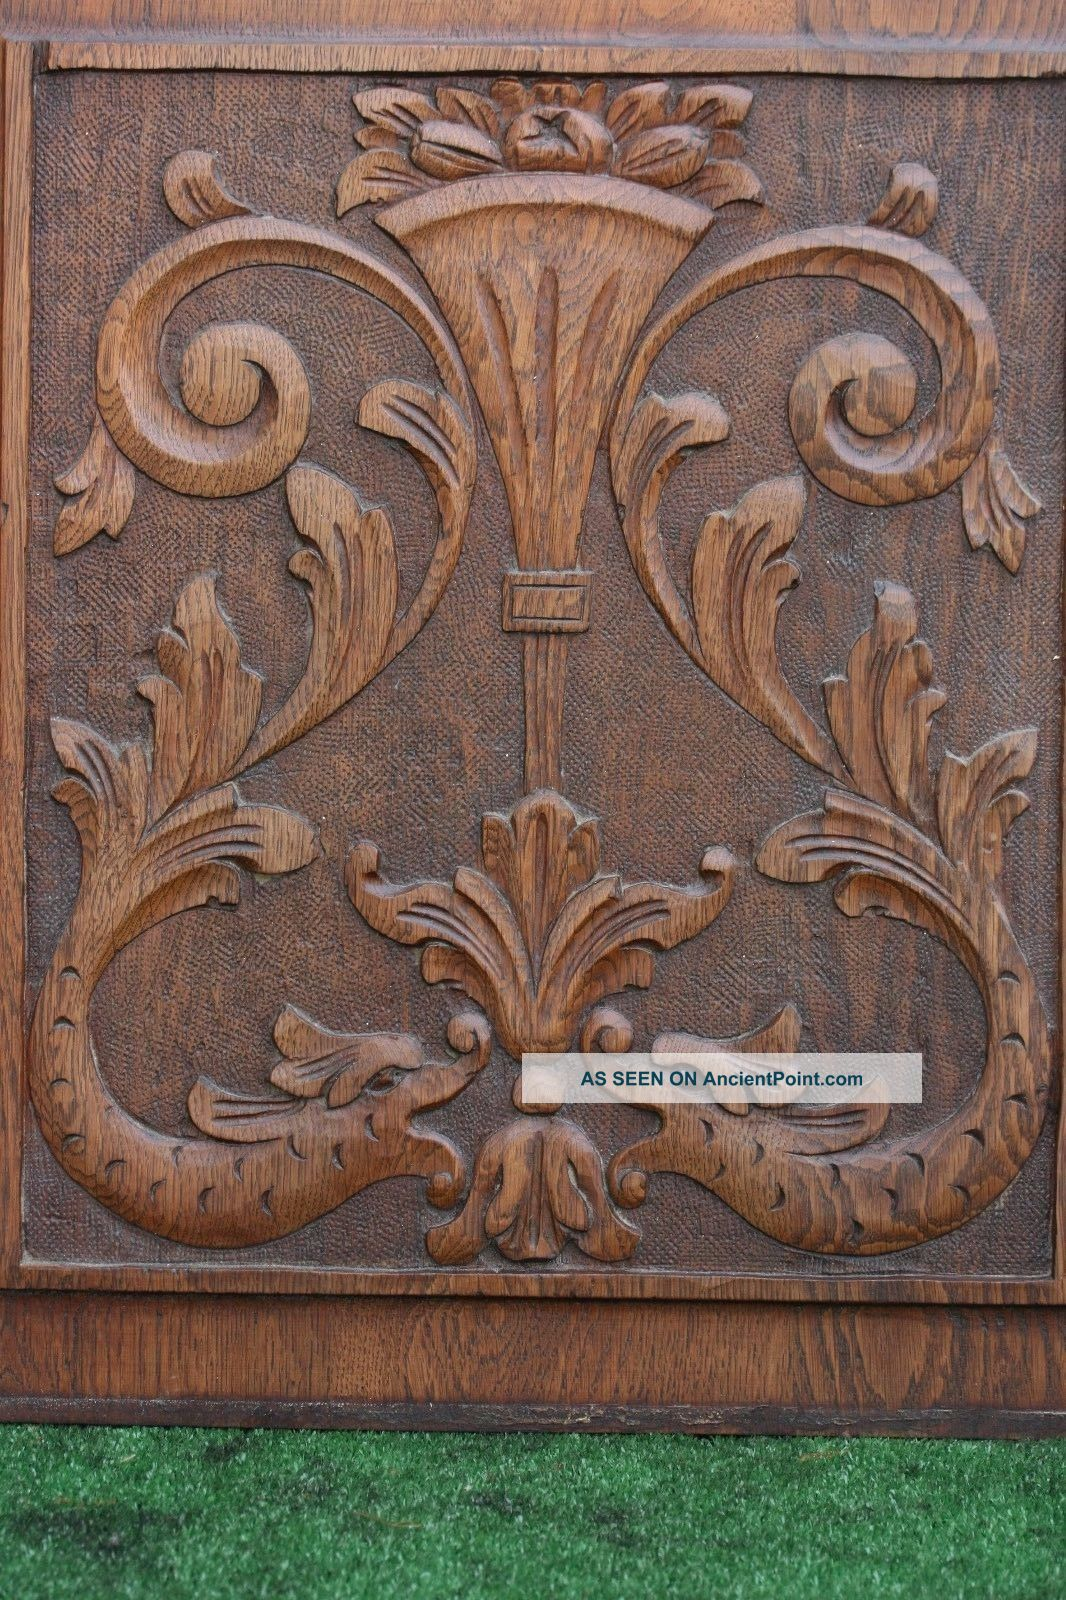 19thc Wooden Oak Panel With Dolphins,  Urn,  Leaves & Other Carving C1880s Other Antique Woodenware photo